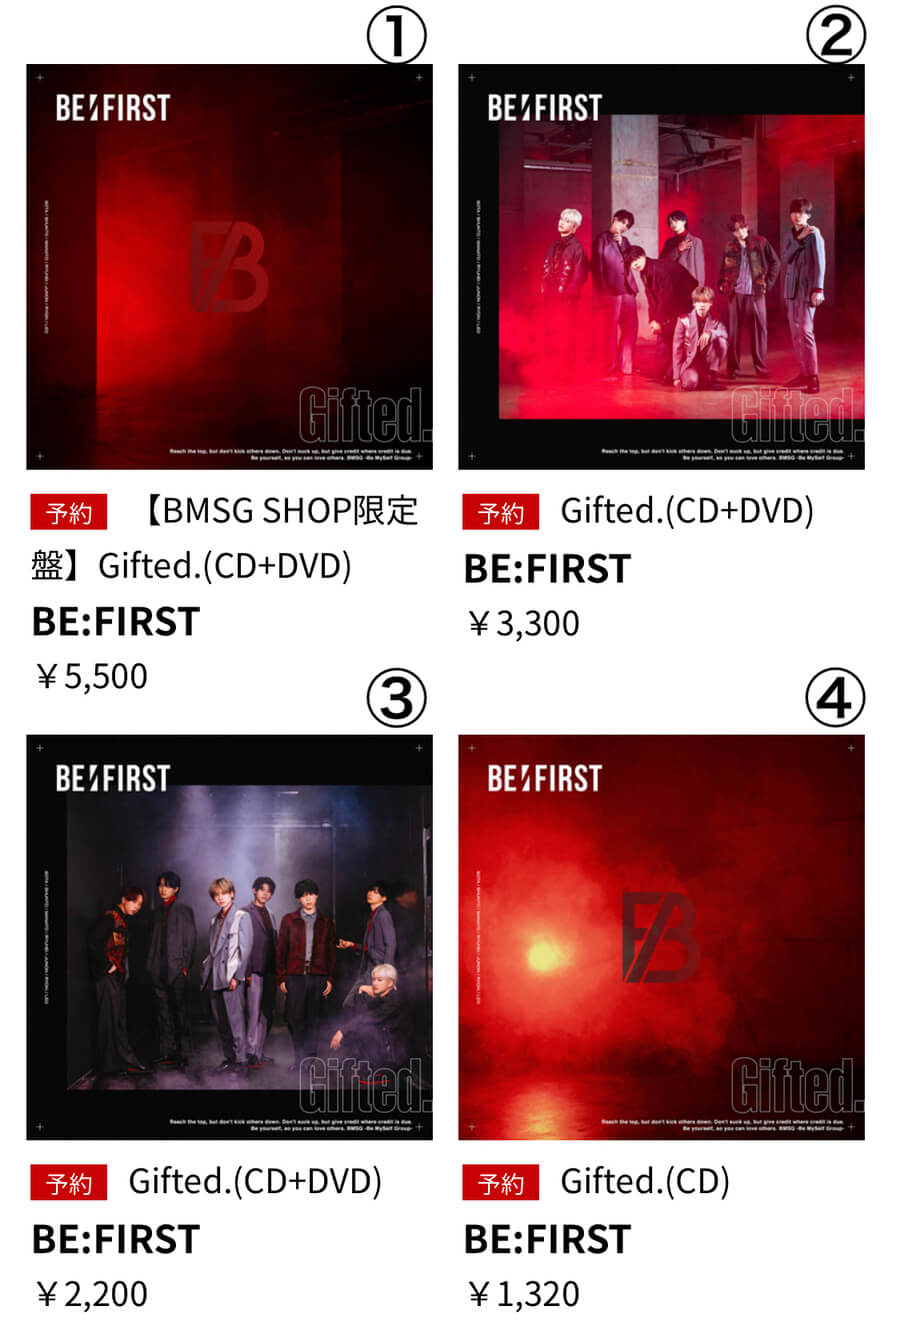 befirst gifted.種類